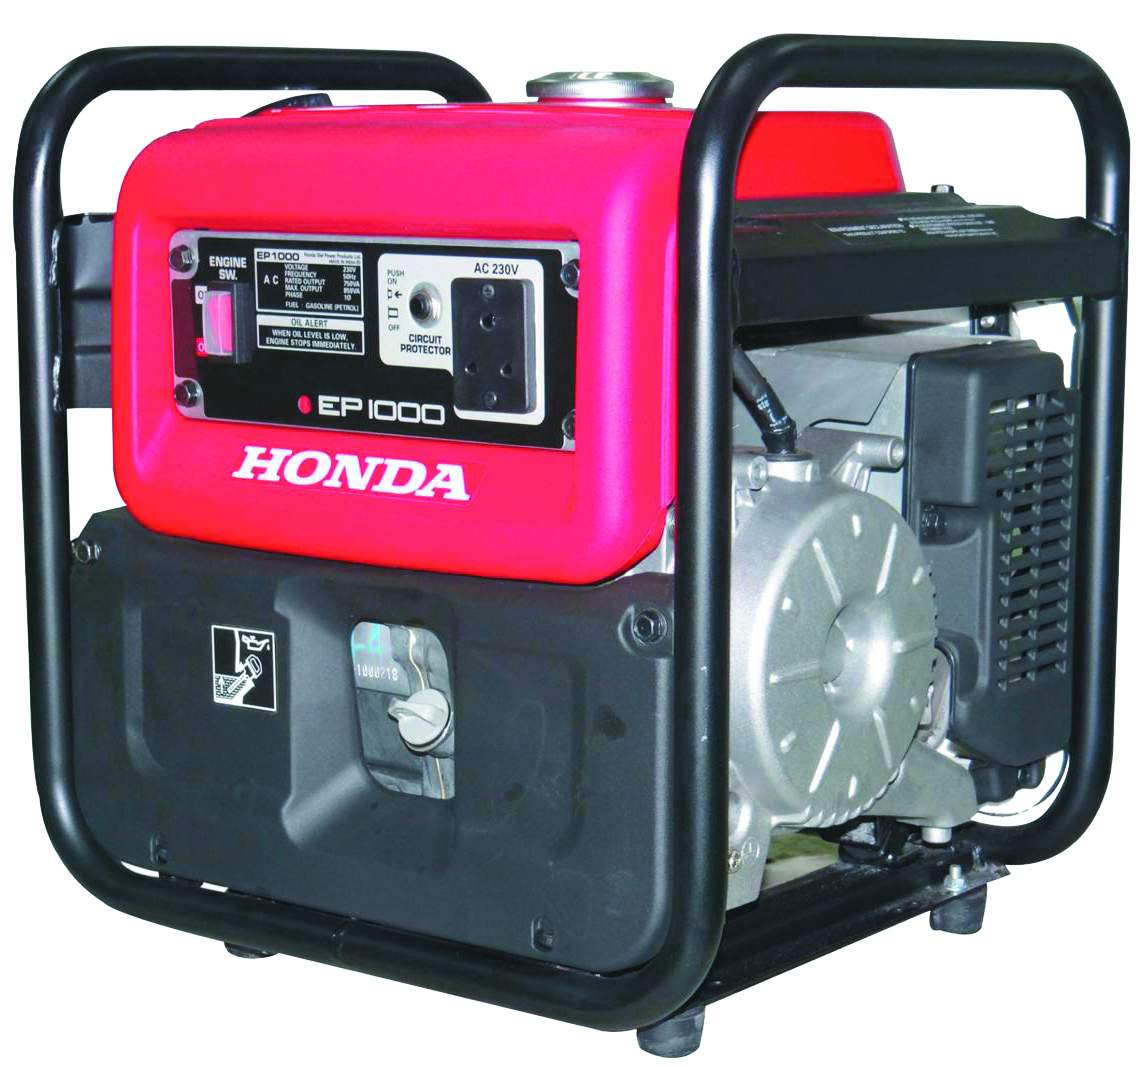 hight resolution of buy honda 850 va handy series portable generator ep 1000 online in india at best prices